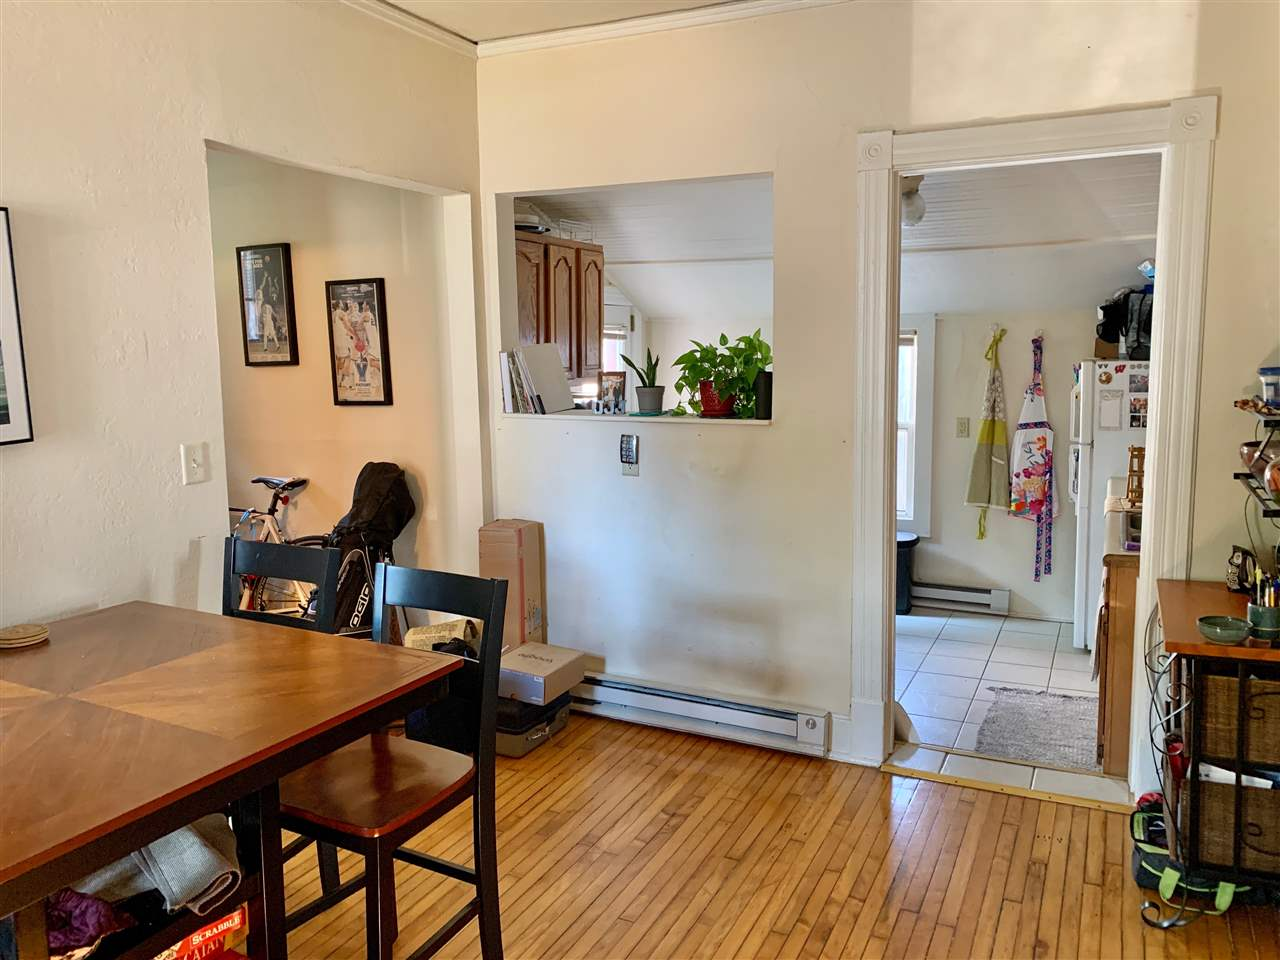 406-408-408 1/2 South Mills St, Madison, WI 53715